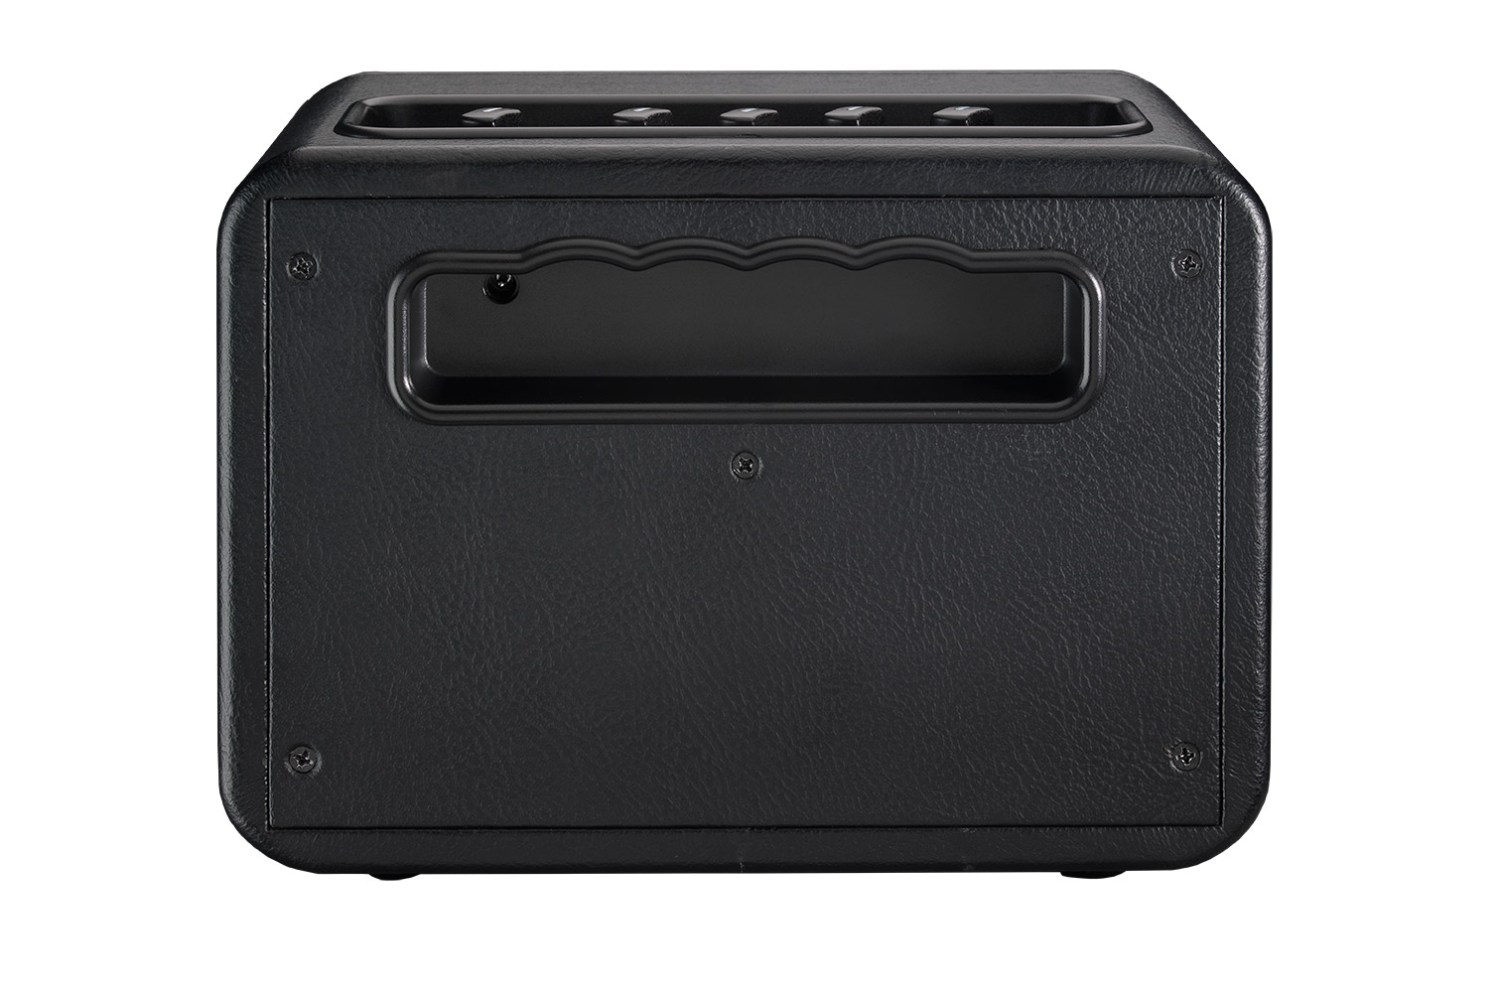 laney amplification announces the mini bass nx battery powered bass amp. Black Bedroom Furniture Sets. Home Design Ideas